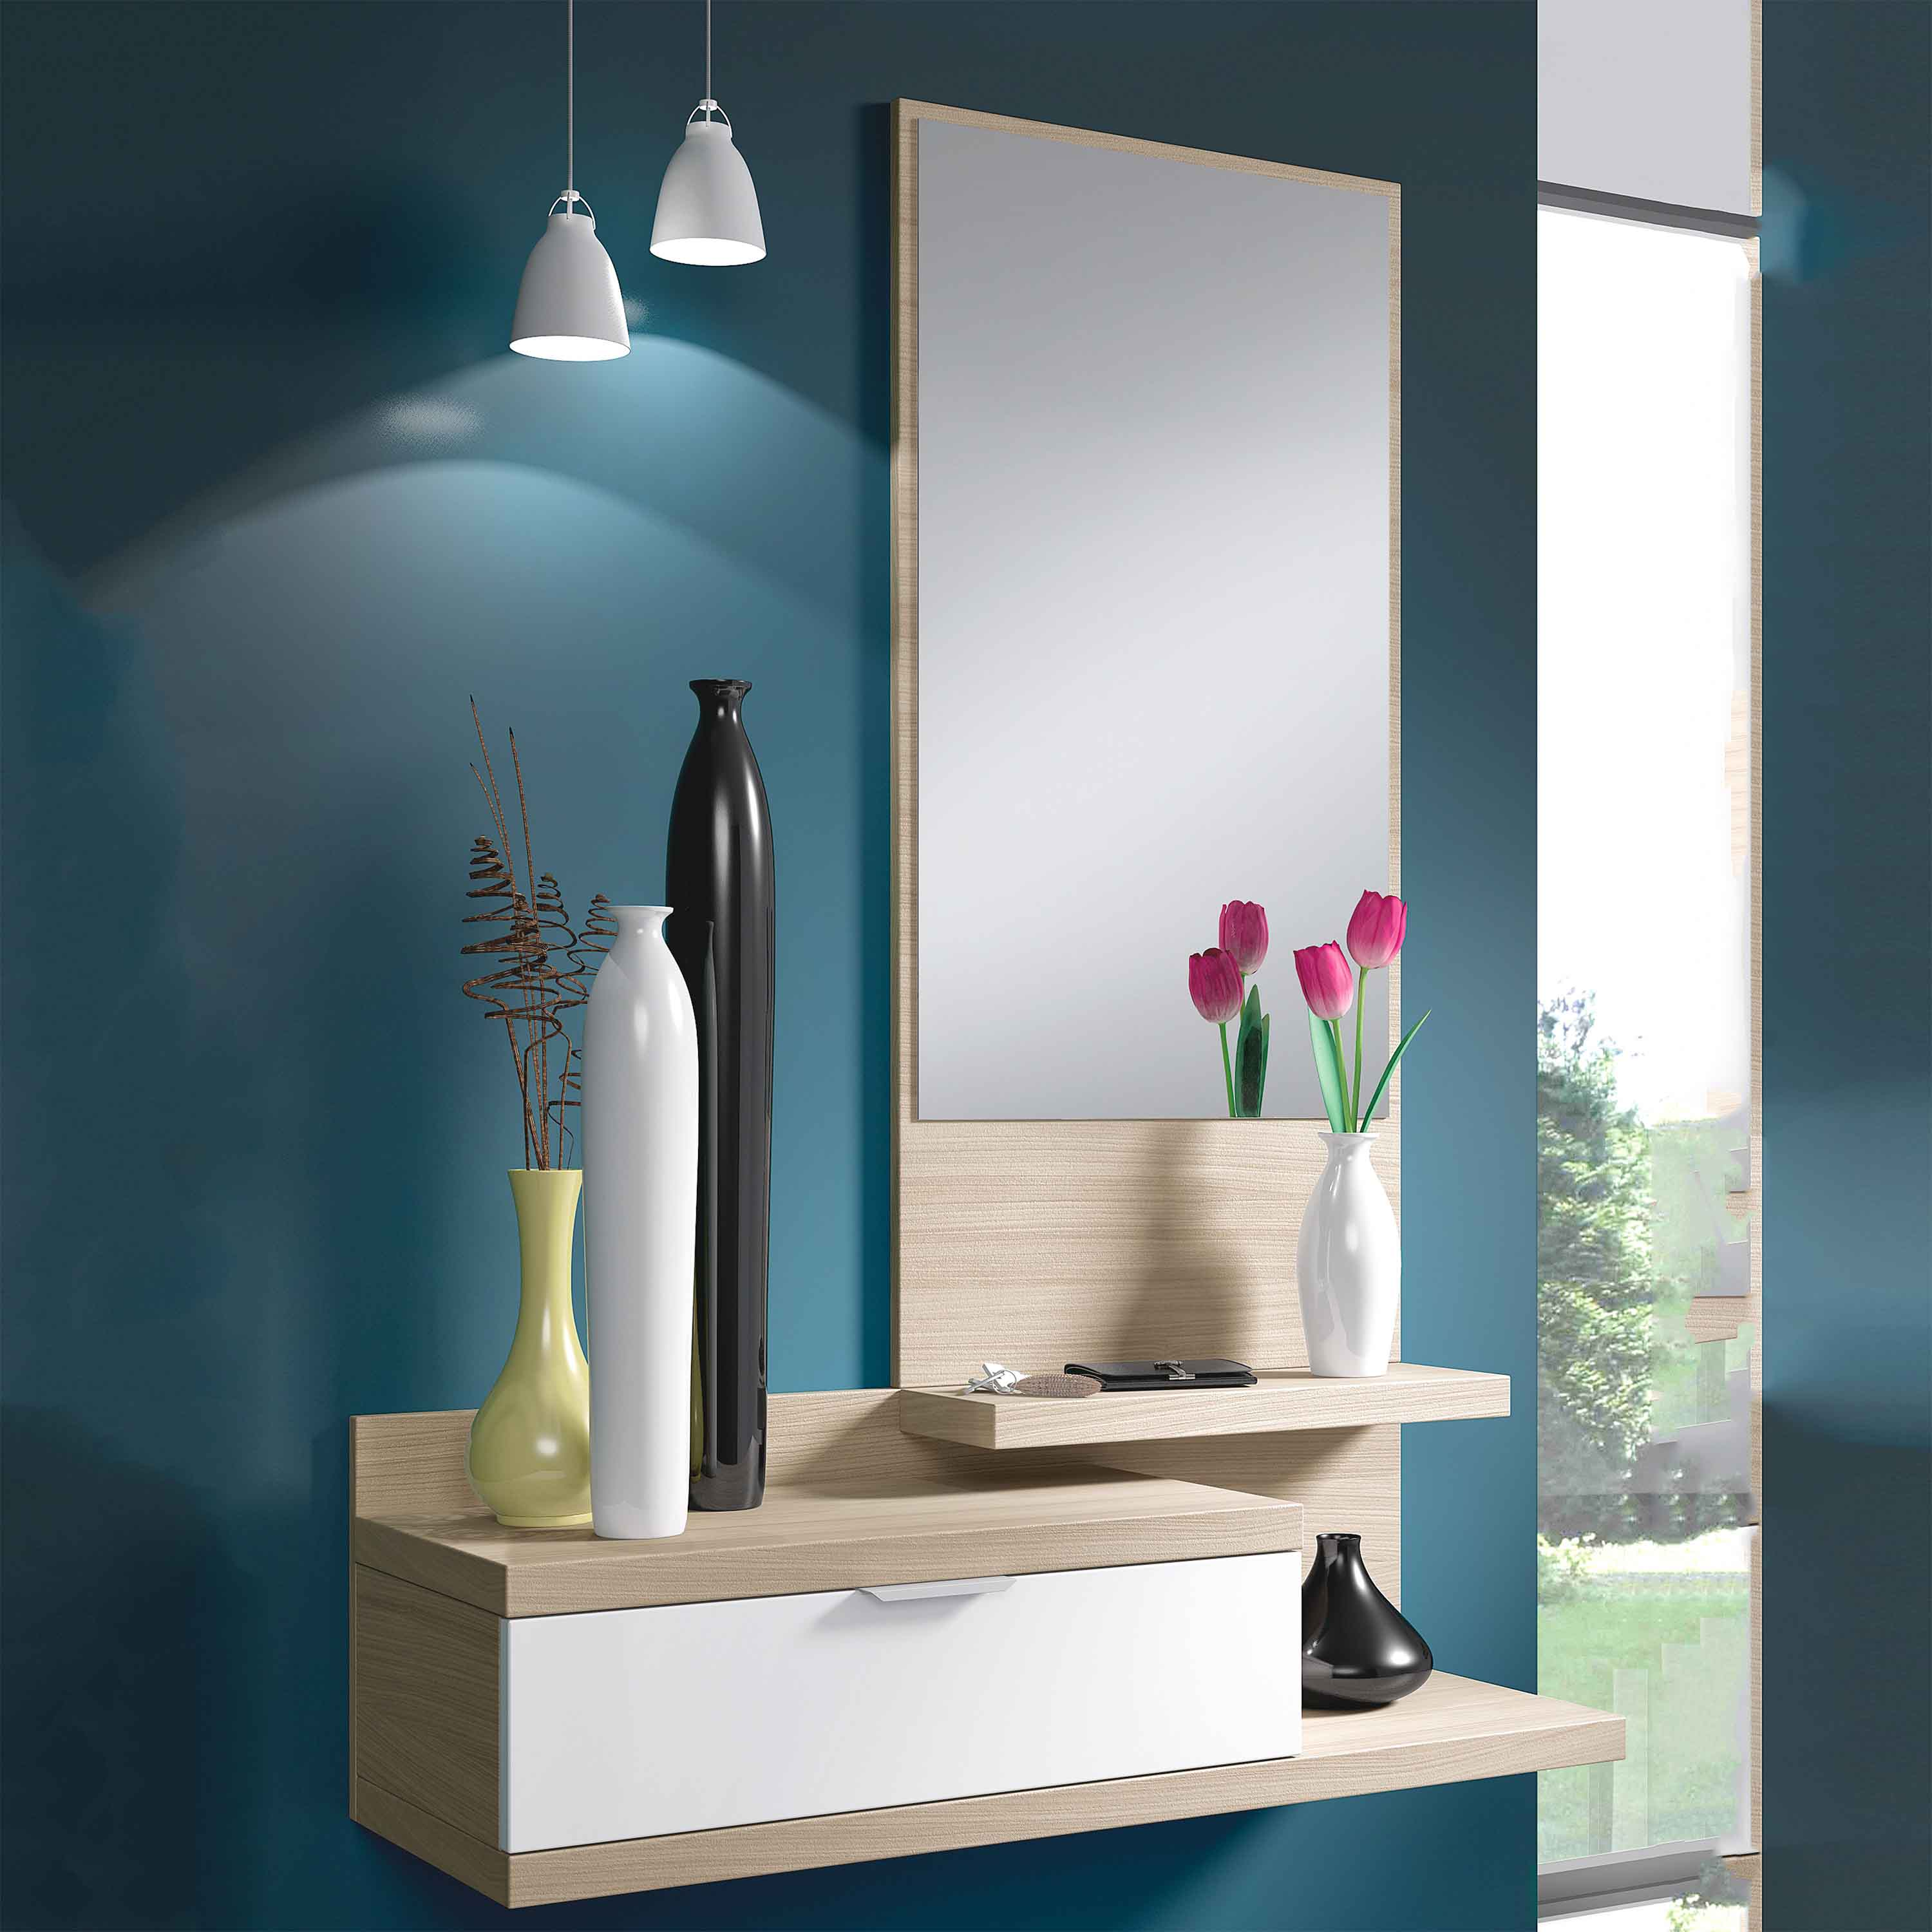 Miroirs-consolles-toilettes